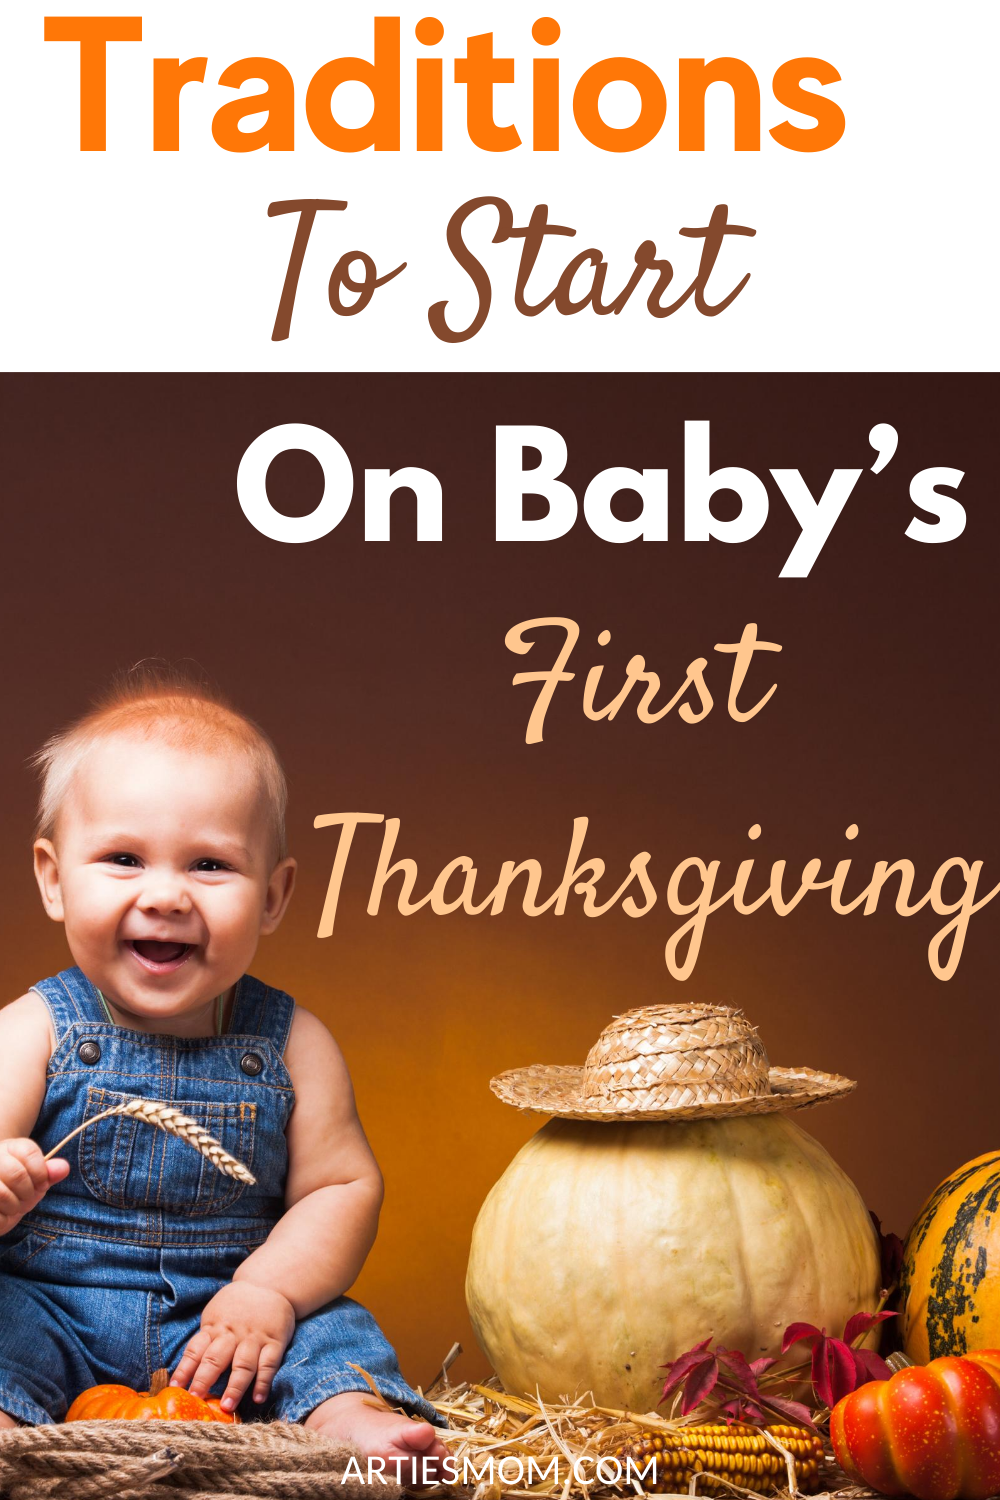 traditions to start on baby's first thanksgiving